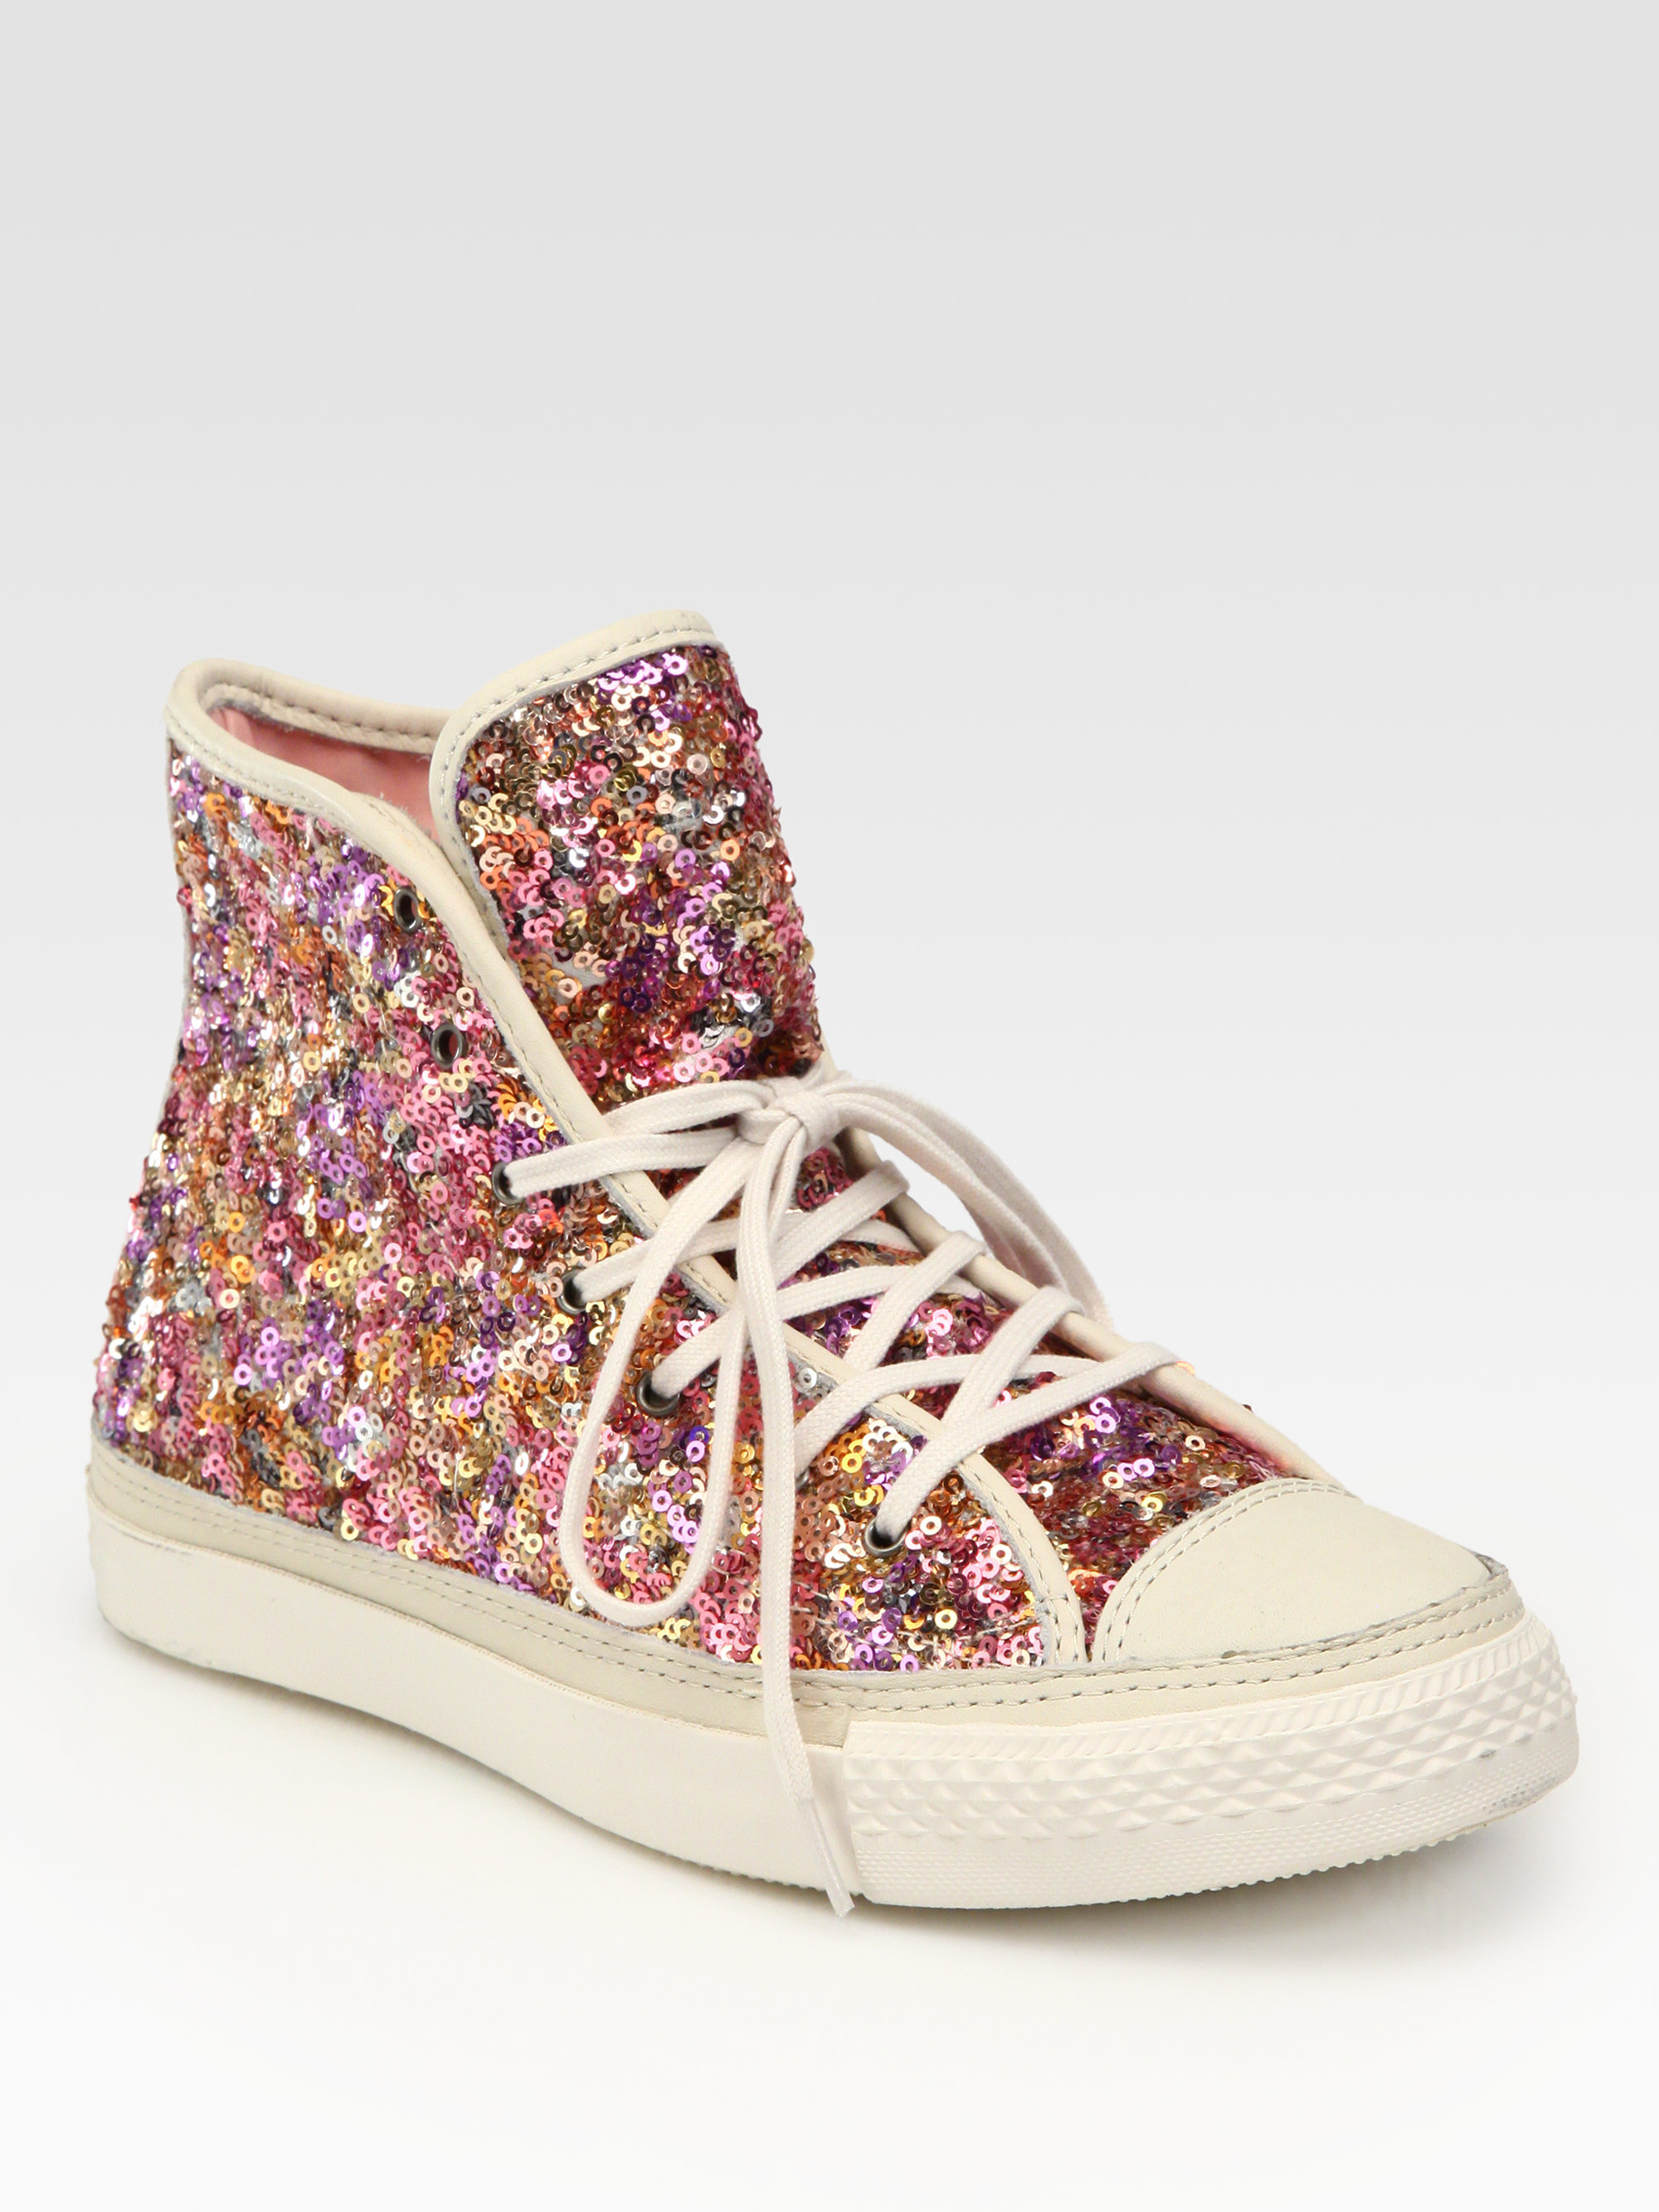 68372542919f closeout converse pink sequin chuck taylor all star trainers ddd02 03069   wholesale lyst converse sequin hightop sneakers in pink 6b8e0 c8ecd